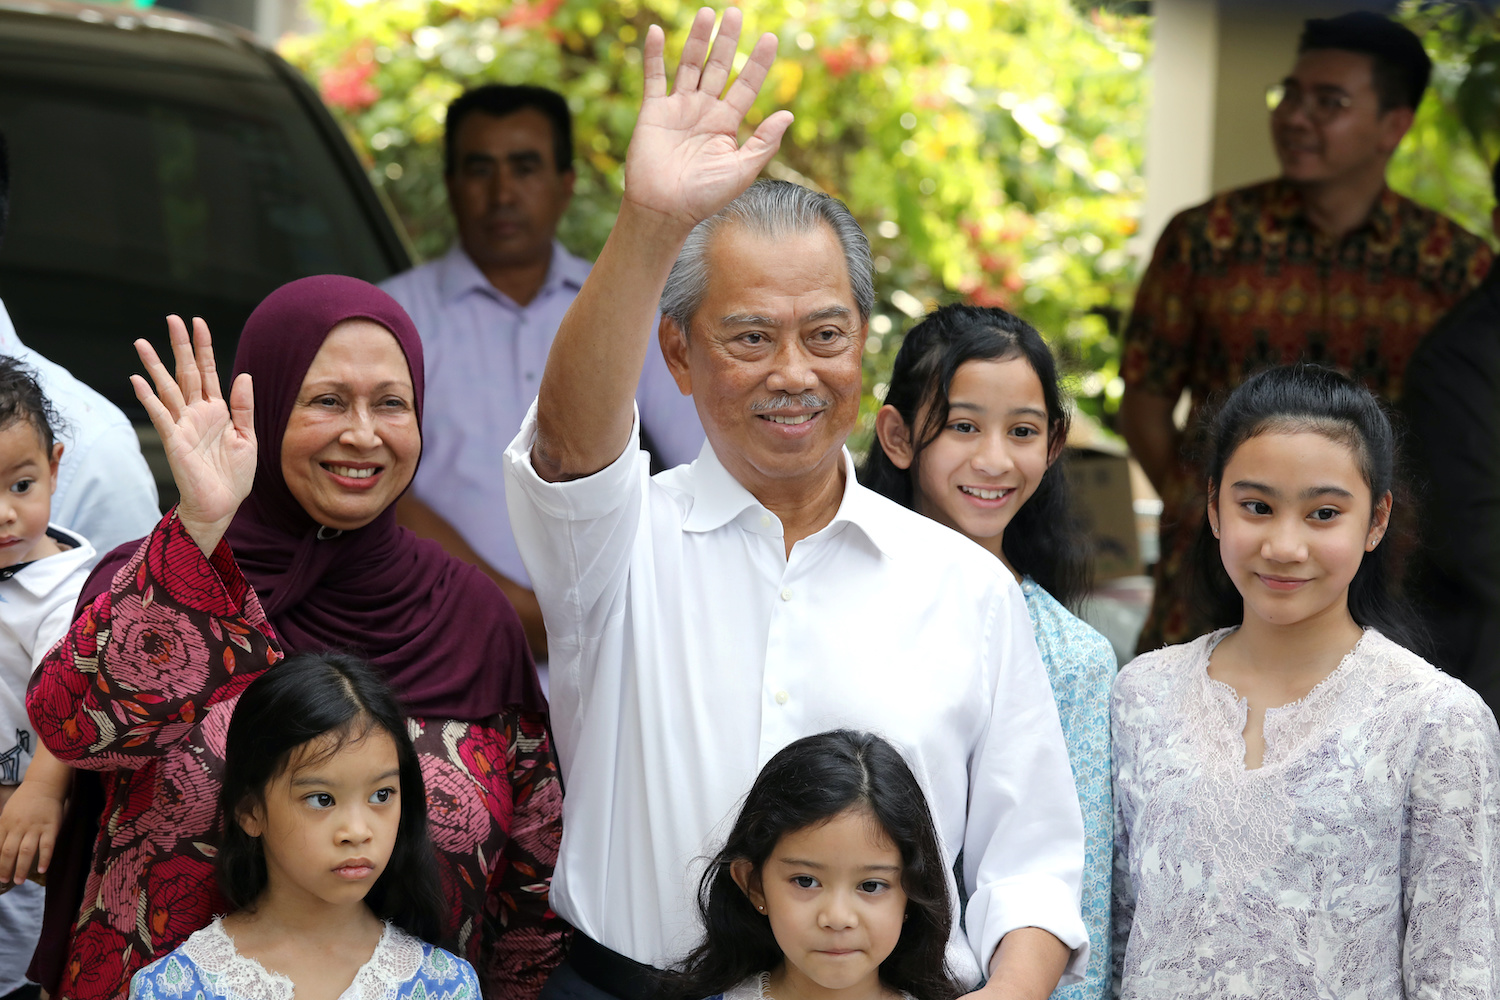 Former interior minister Muhyiddin Yassin waves to reporters outside his residence in Kuala Lumpur on Saturday after being named prime minister by Malaysia's king. (Reuters Photo)